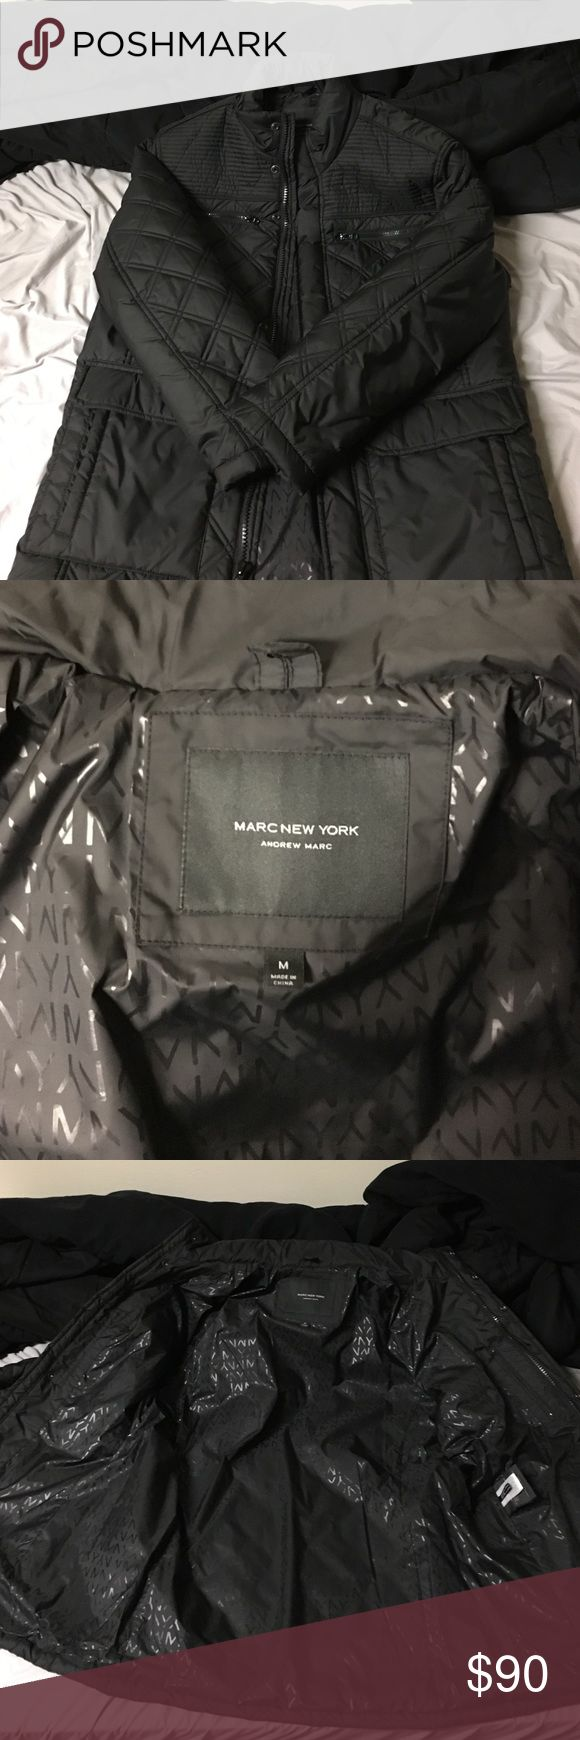 Marc New York Andrew Marc Quilted Jacket 4 pocket Medium size quilted jacket from Andrew Marc Marc New York. Excellent condition, hardly ever worn. Andrew Marc Jackets & Coats Puffers